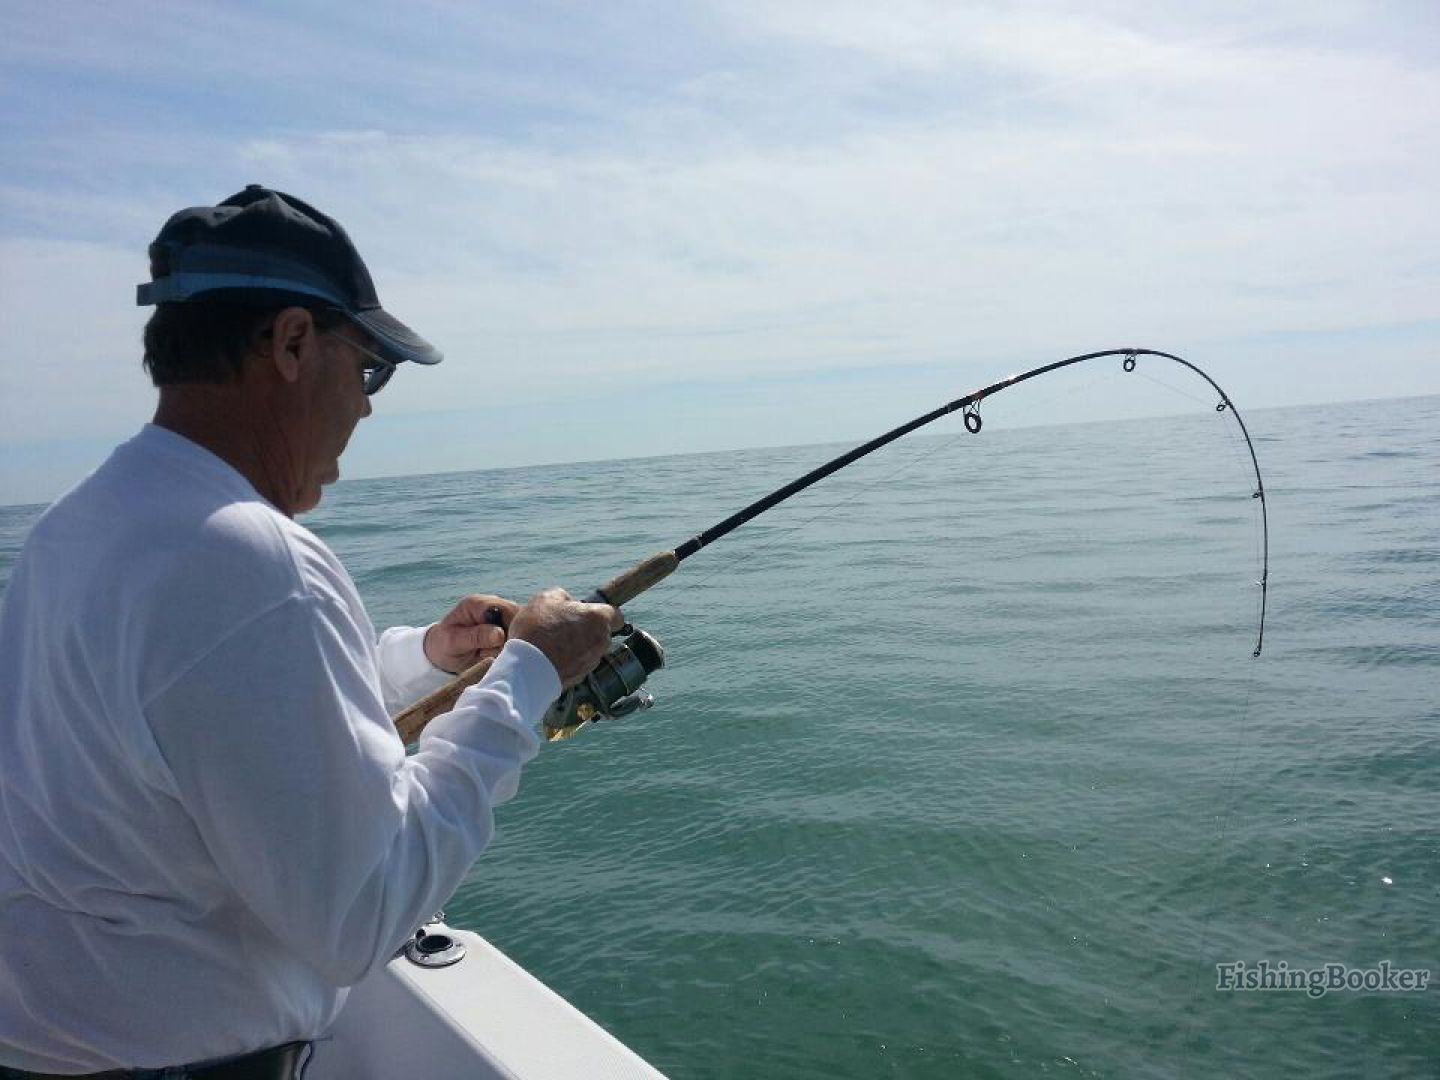 Catch on charters madeira beach florida for Madeira beach fishing charters